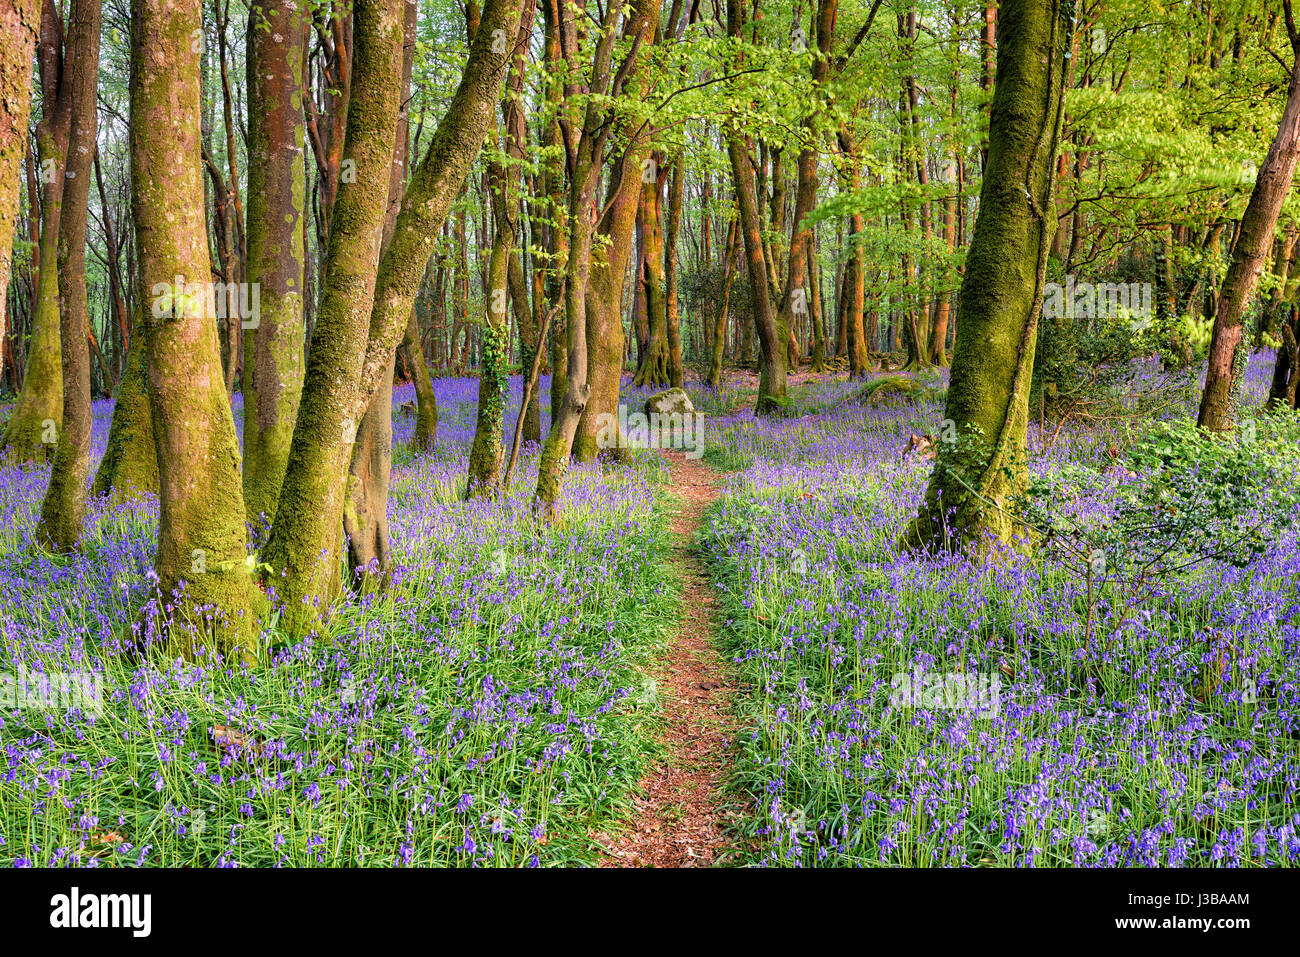 A path through bluebell woods near Camborne in the Cornwall countryside - Stock Image